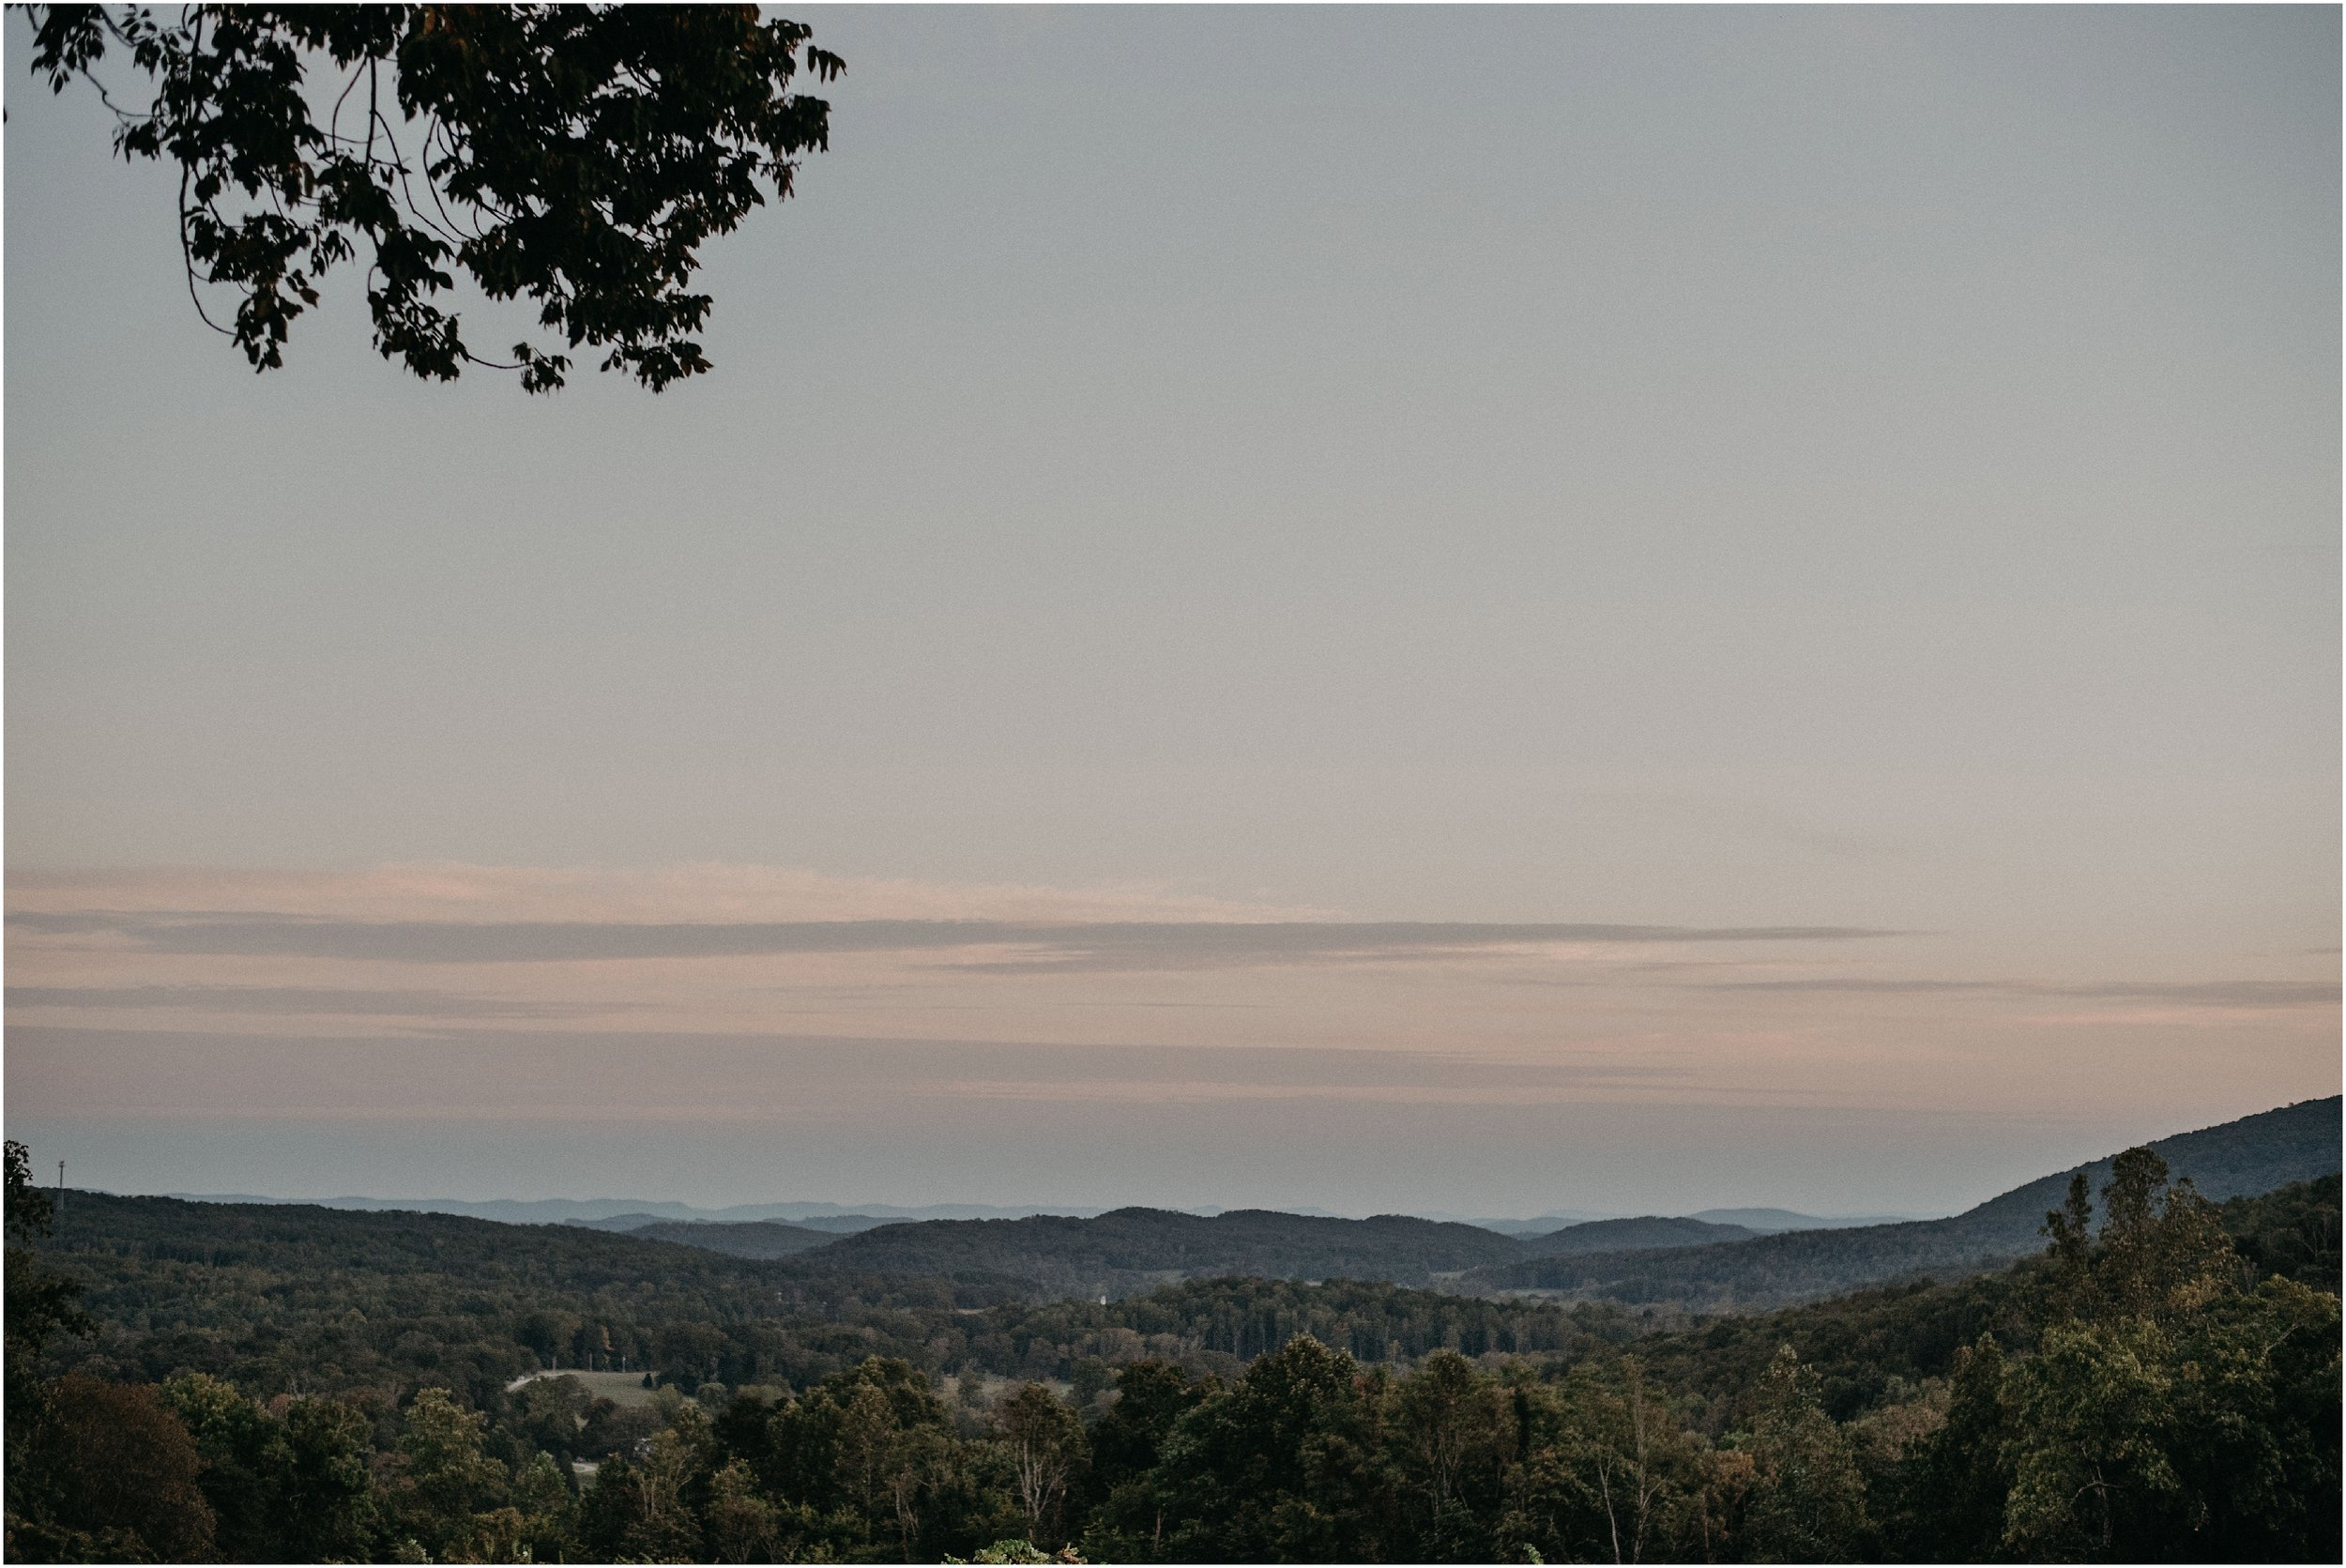 Sunset over Blue Ridge Mountains at Debarge Winery in Lafayette, Georgia